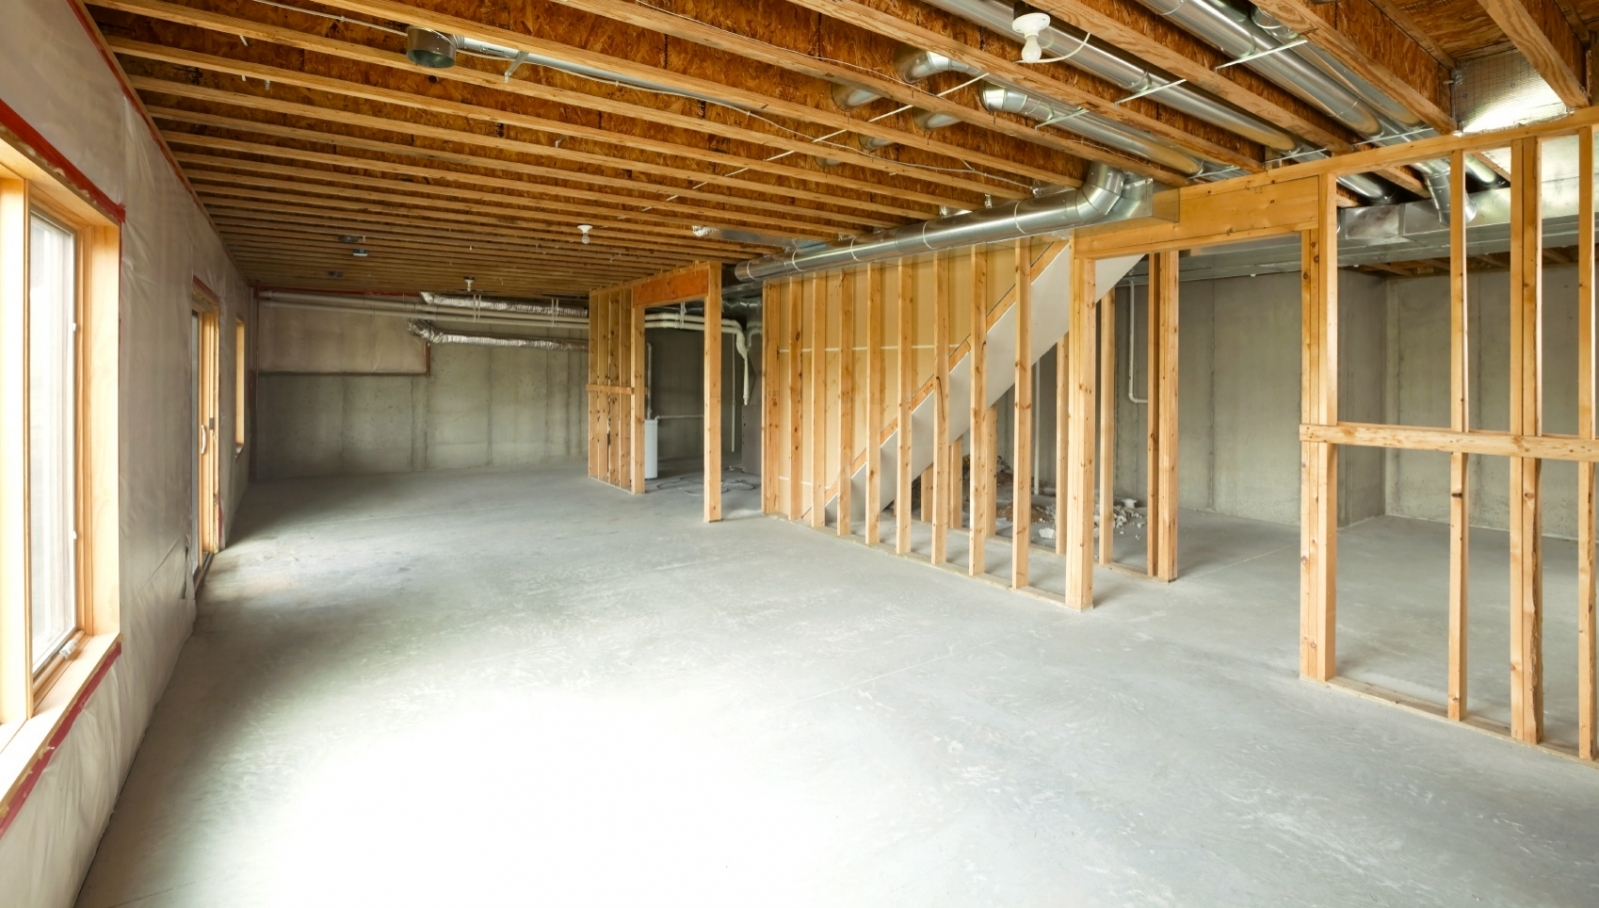 Basement Waterproofing: Why a Closed Pressure Relief System Is Best – Kings County, NY